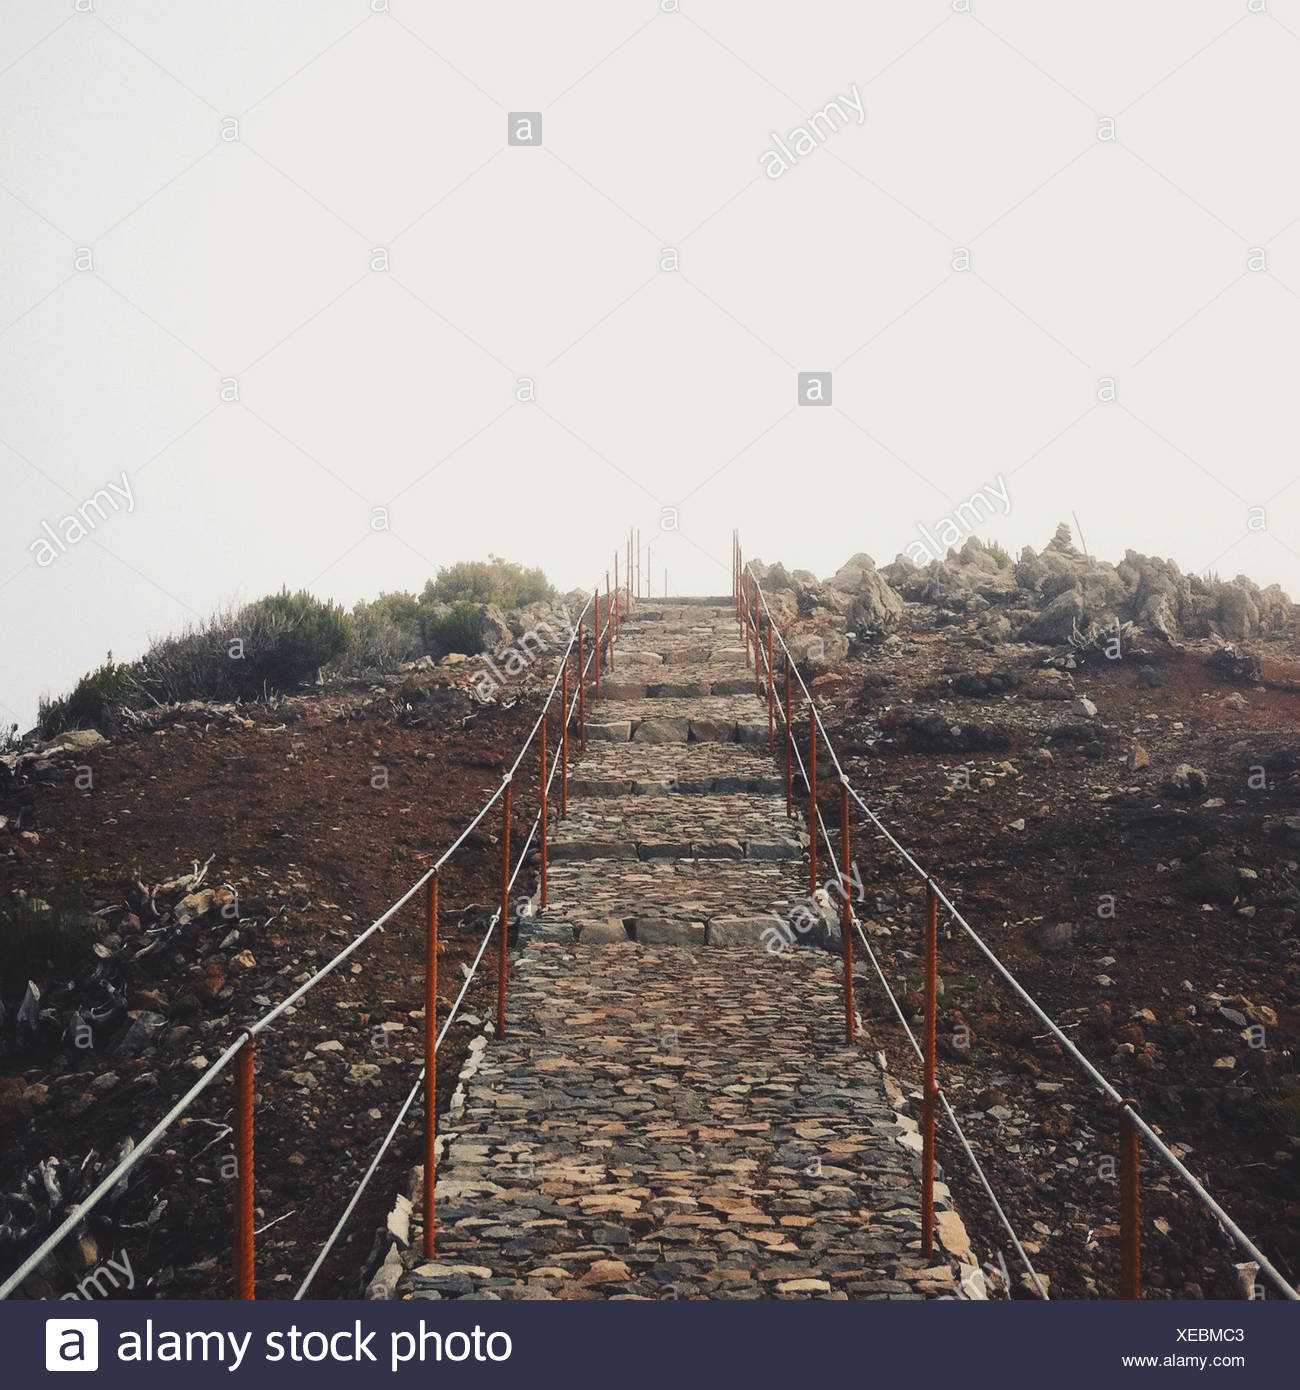 Stony trail to the sky - Stock Image